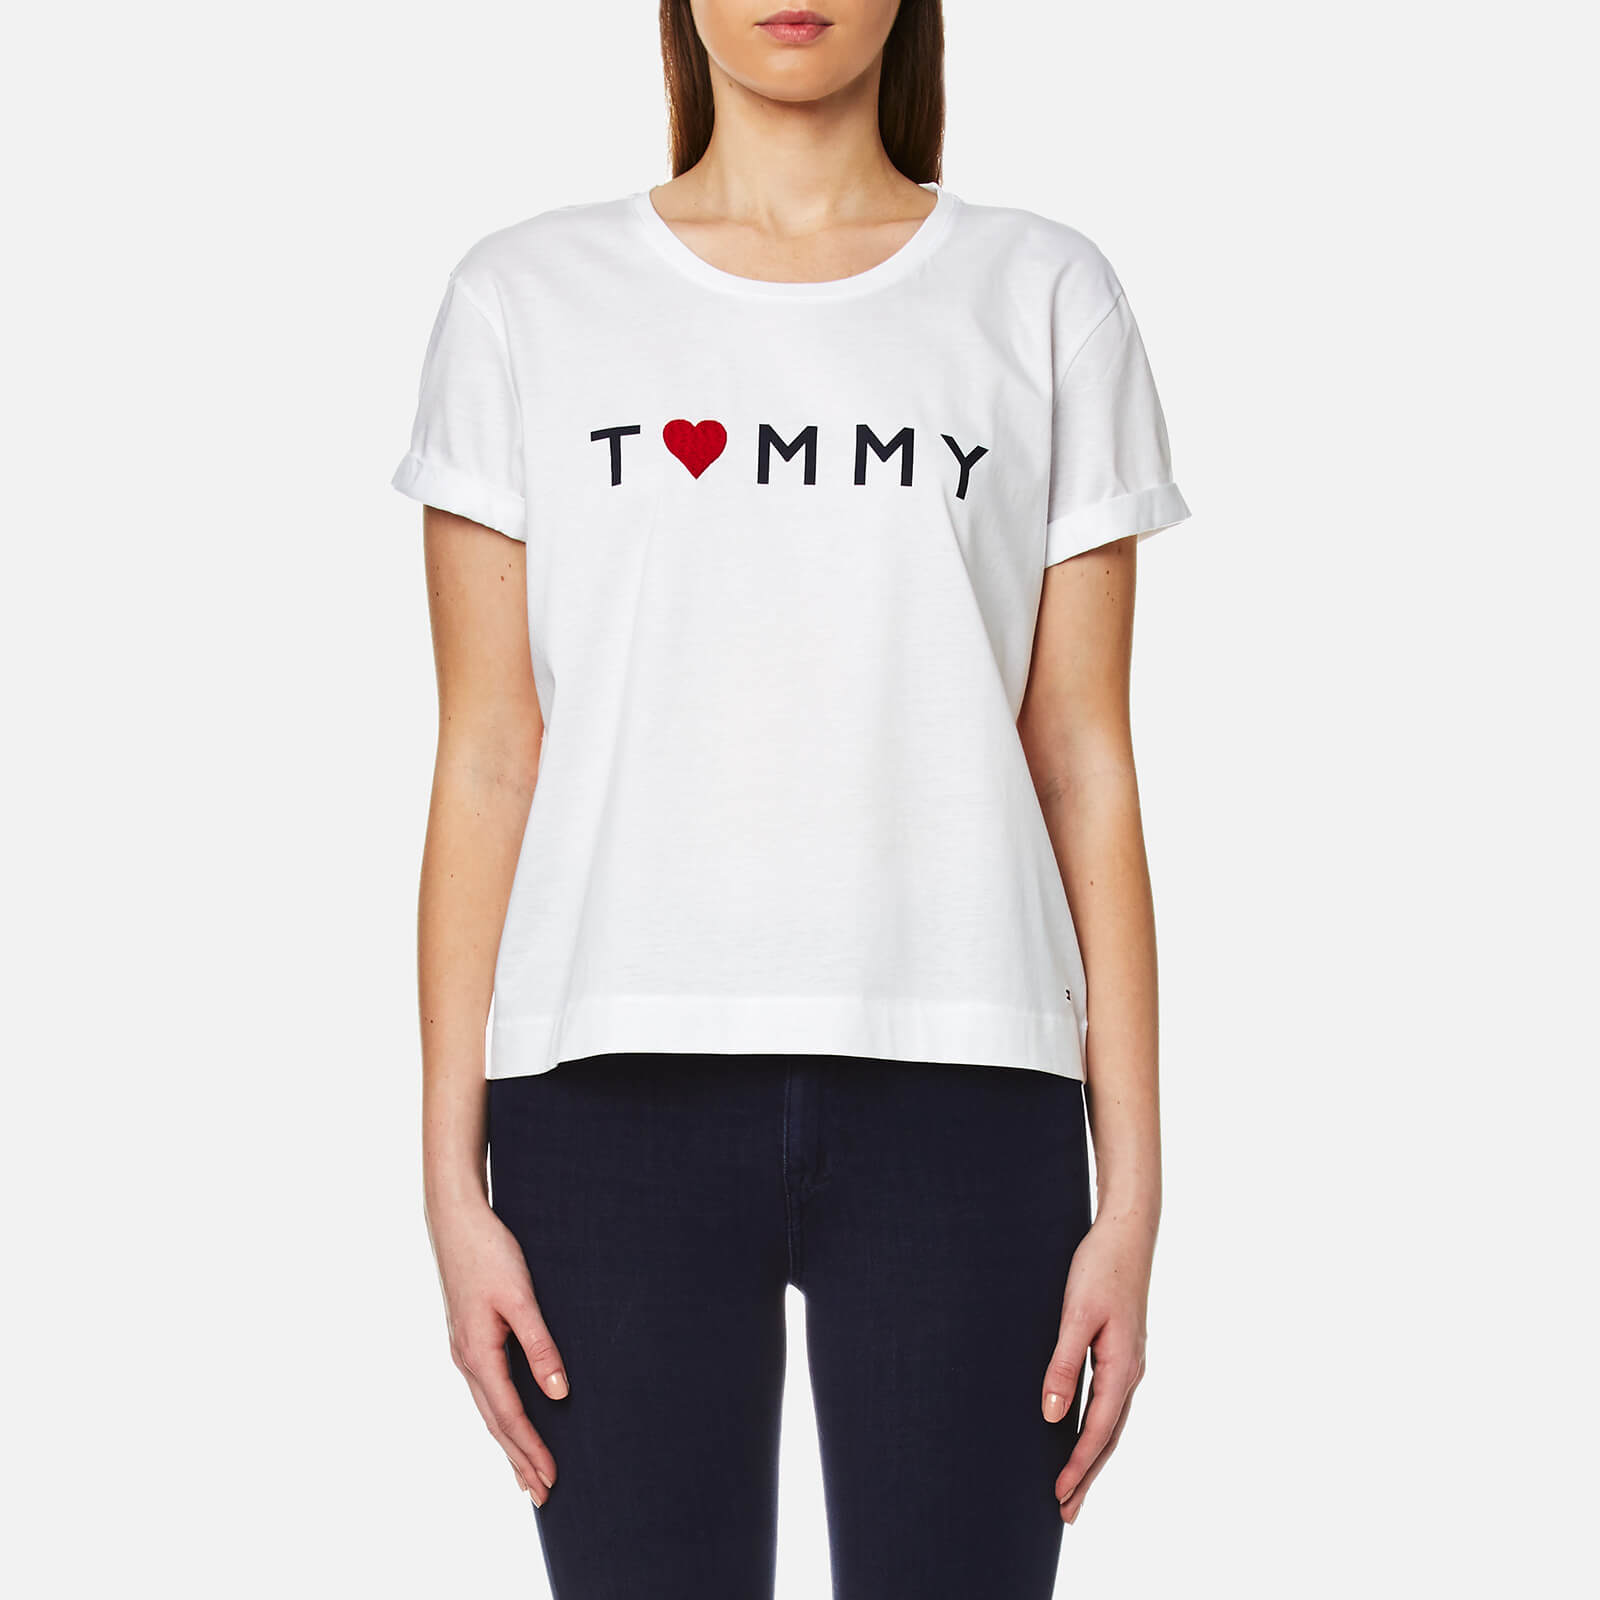 2ed533ad Tommy Hilfiger Women's Tommy Logo Heart T-Shirt - Classic White Womens  Clothing | TheHut.com